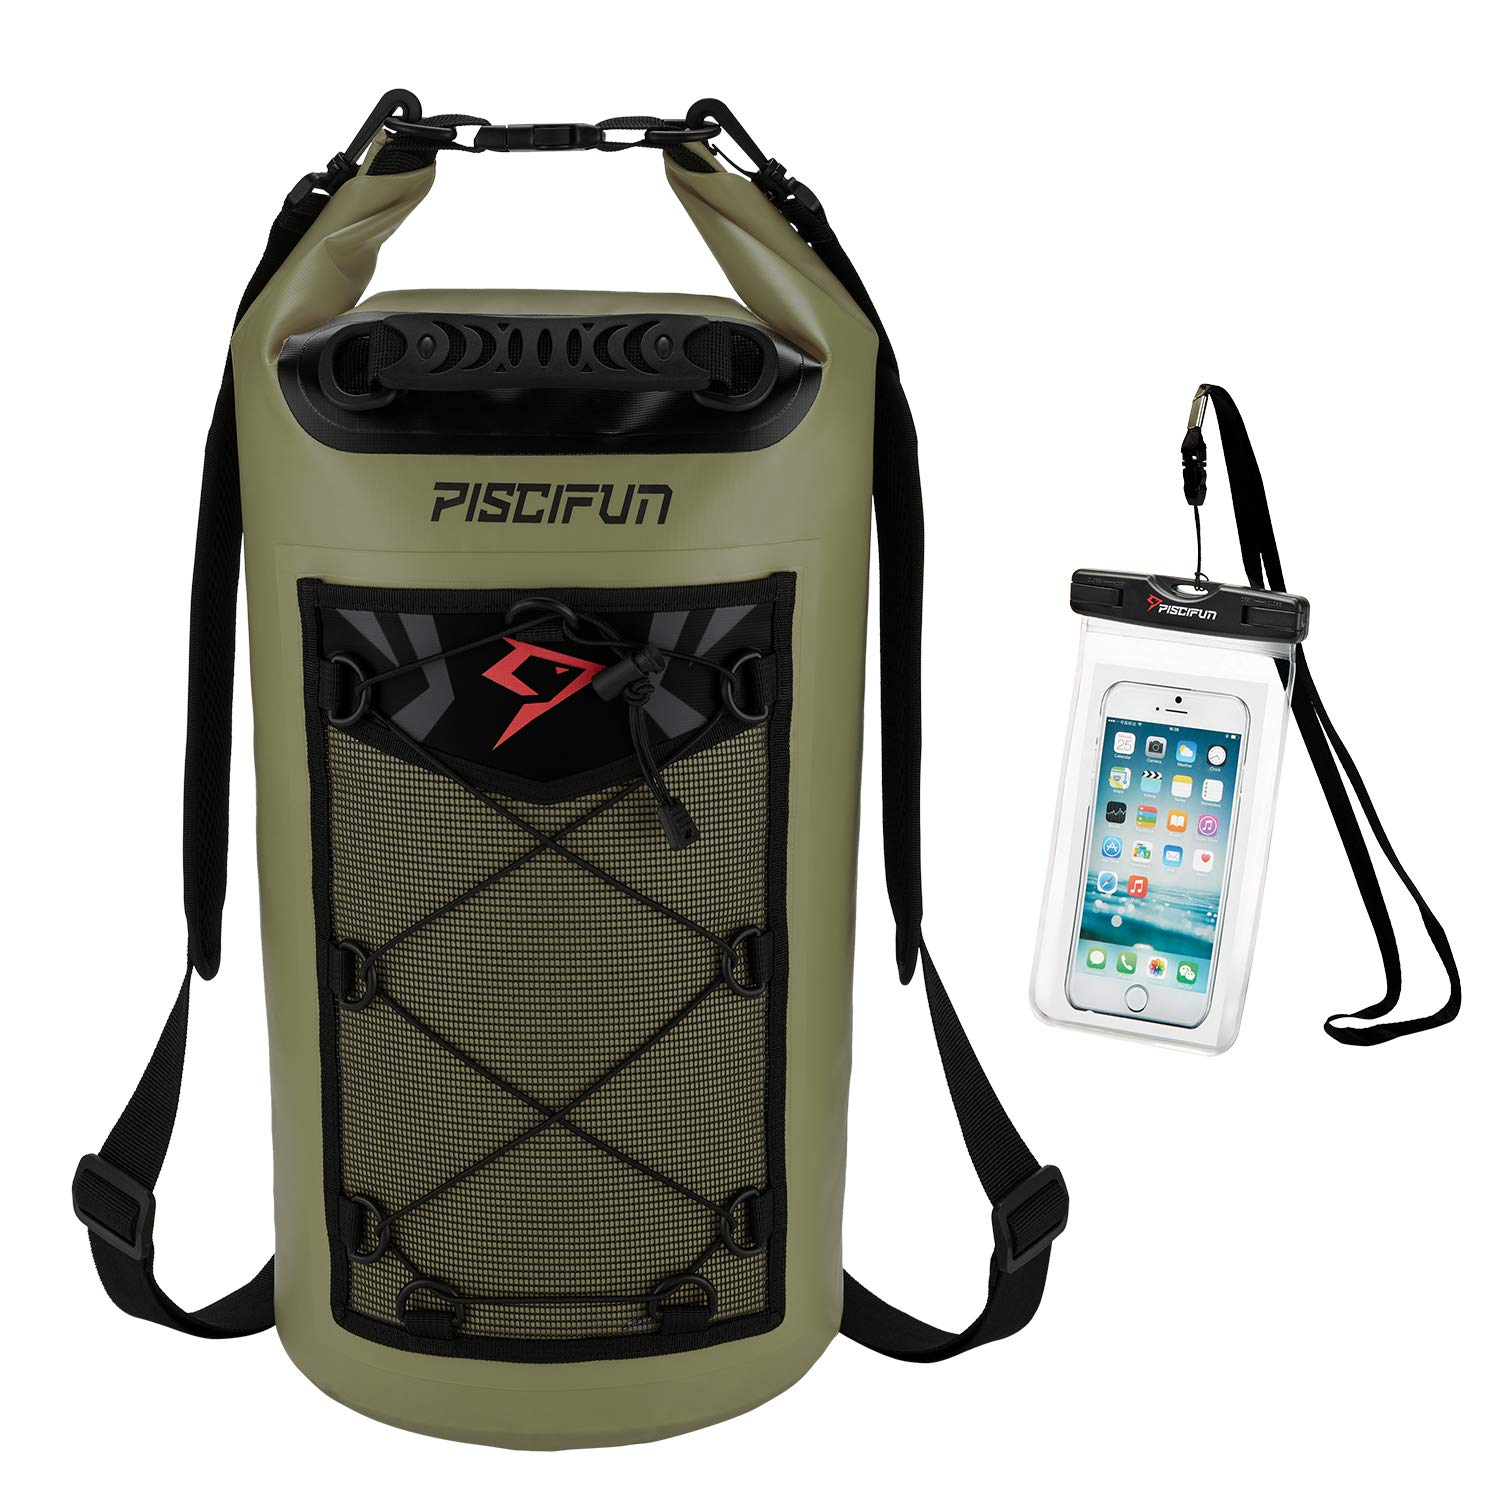 Piscifun Waterproof Dry Bag Backpack Floating Dry Backpack for Water Sports - Fishing Boating Kayaking Surfing Rafting Camping Gifts for Men and Women Free Waterproof Phone Case Army Green 20L